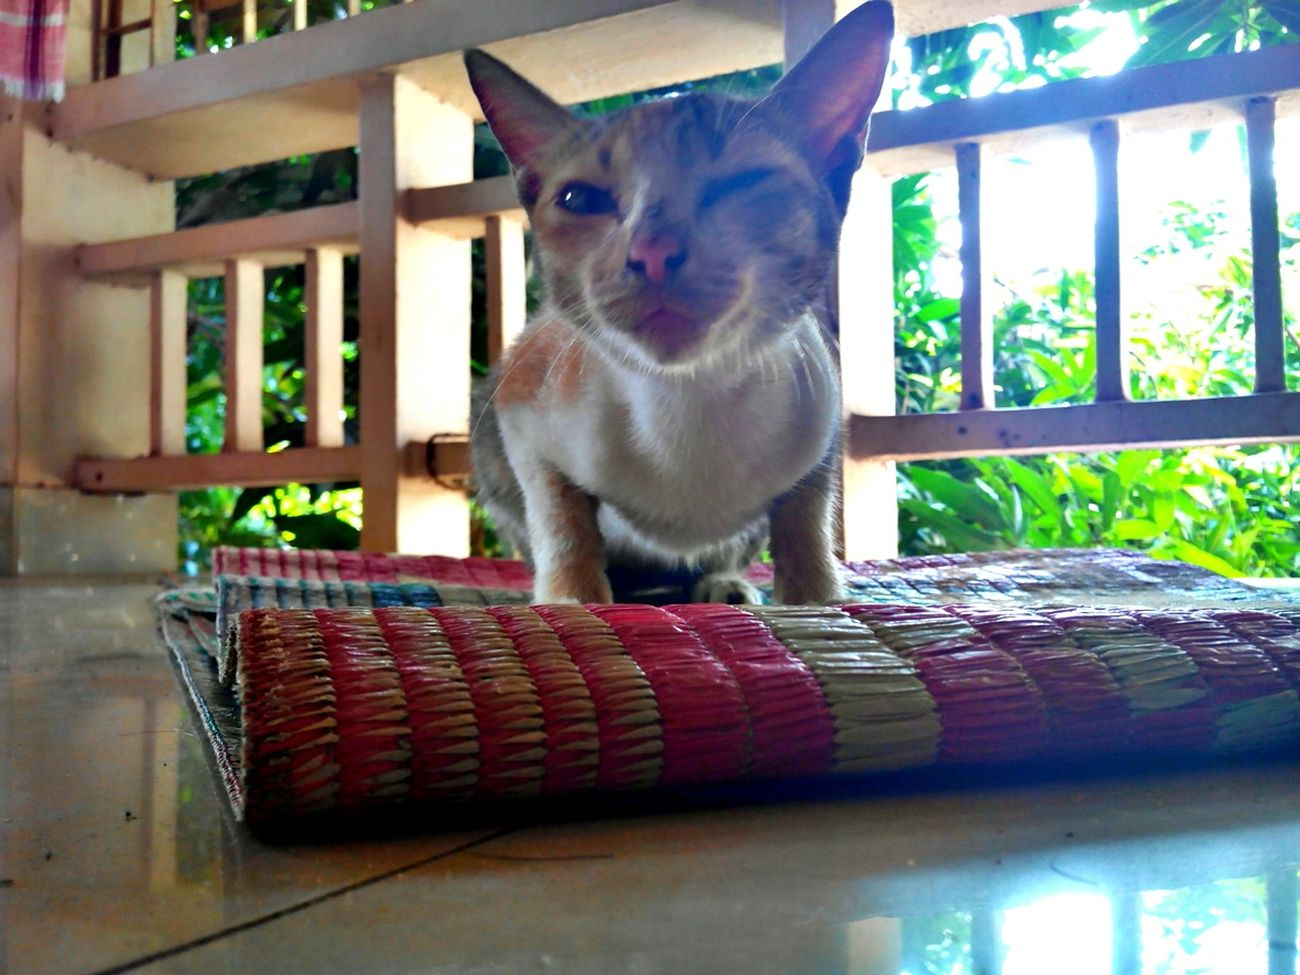 Tara is back, this cat really knows how to pose for a snap :) Mobilephotography Hello World Cat Wink Animal Portrait